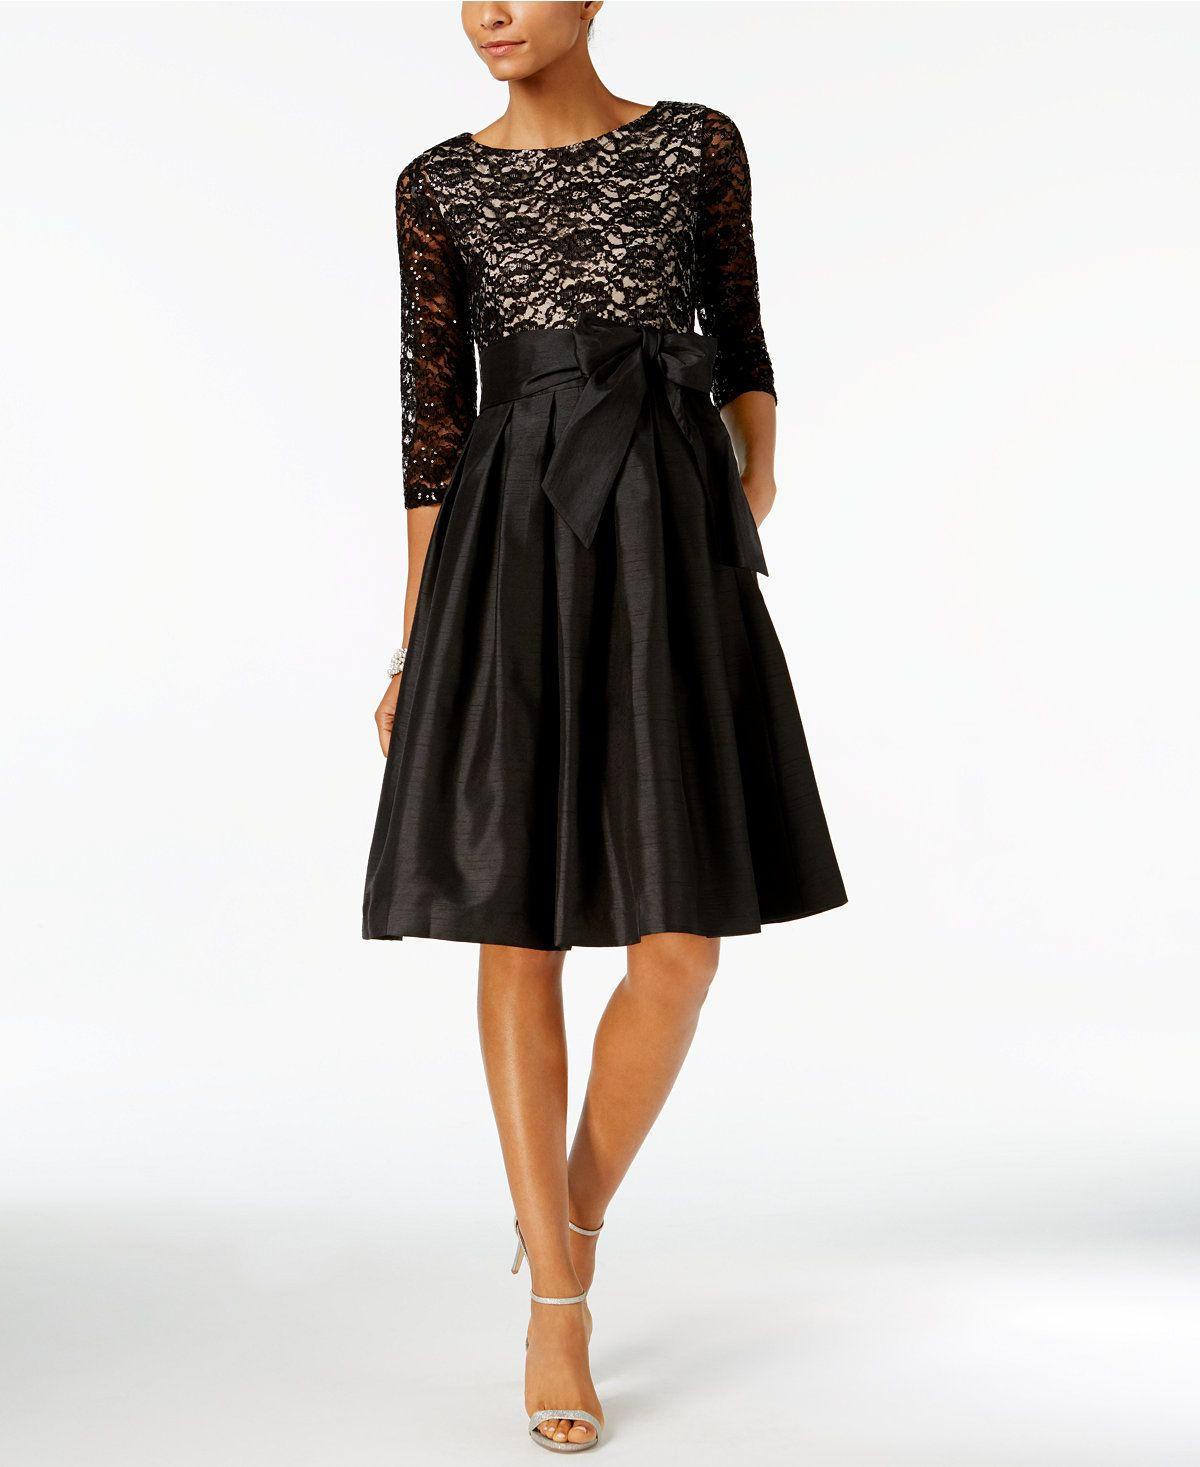 4a02713eac1 Jessica Howard Sequined Lace Fit   Flare Dress - Dresses - Women - Macy s